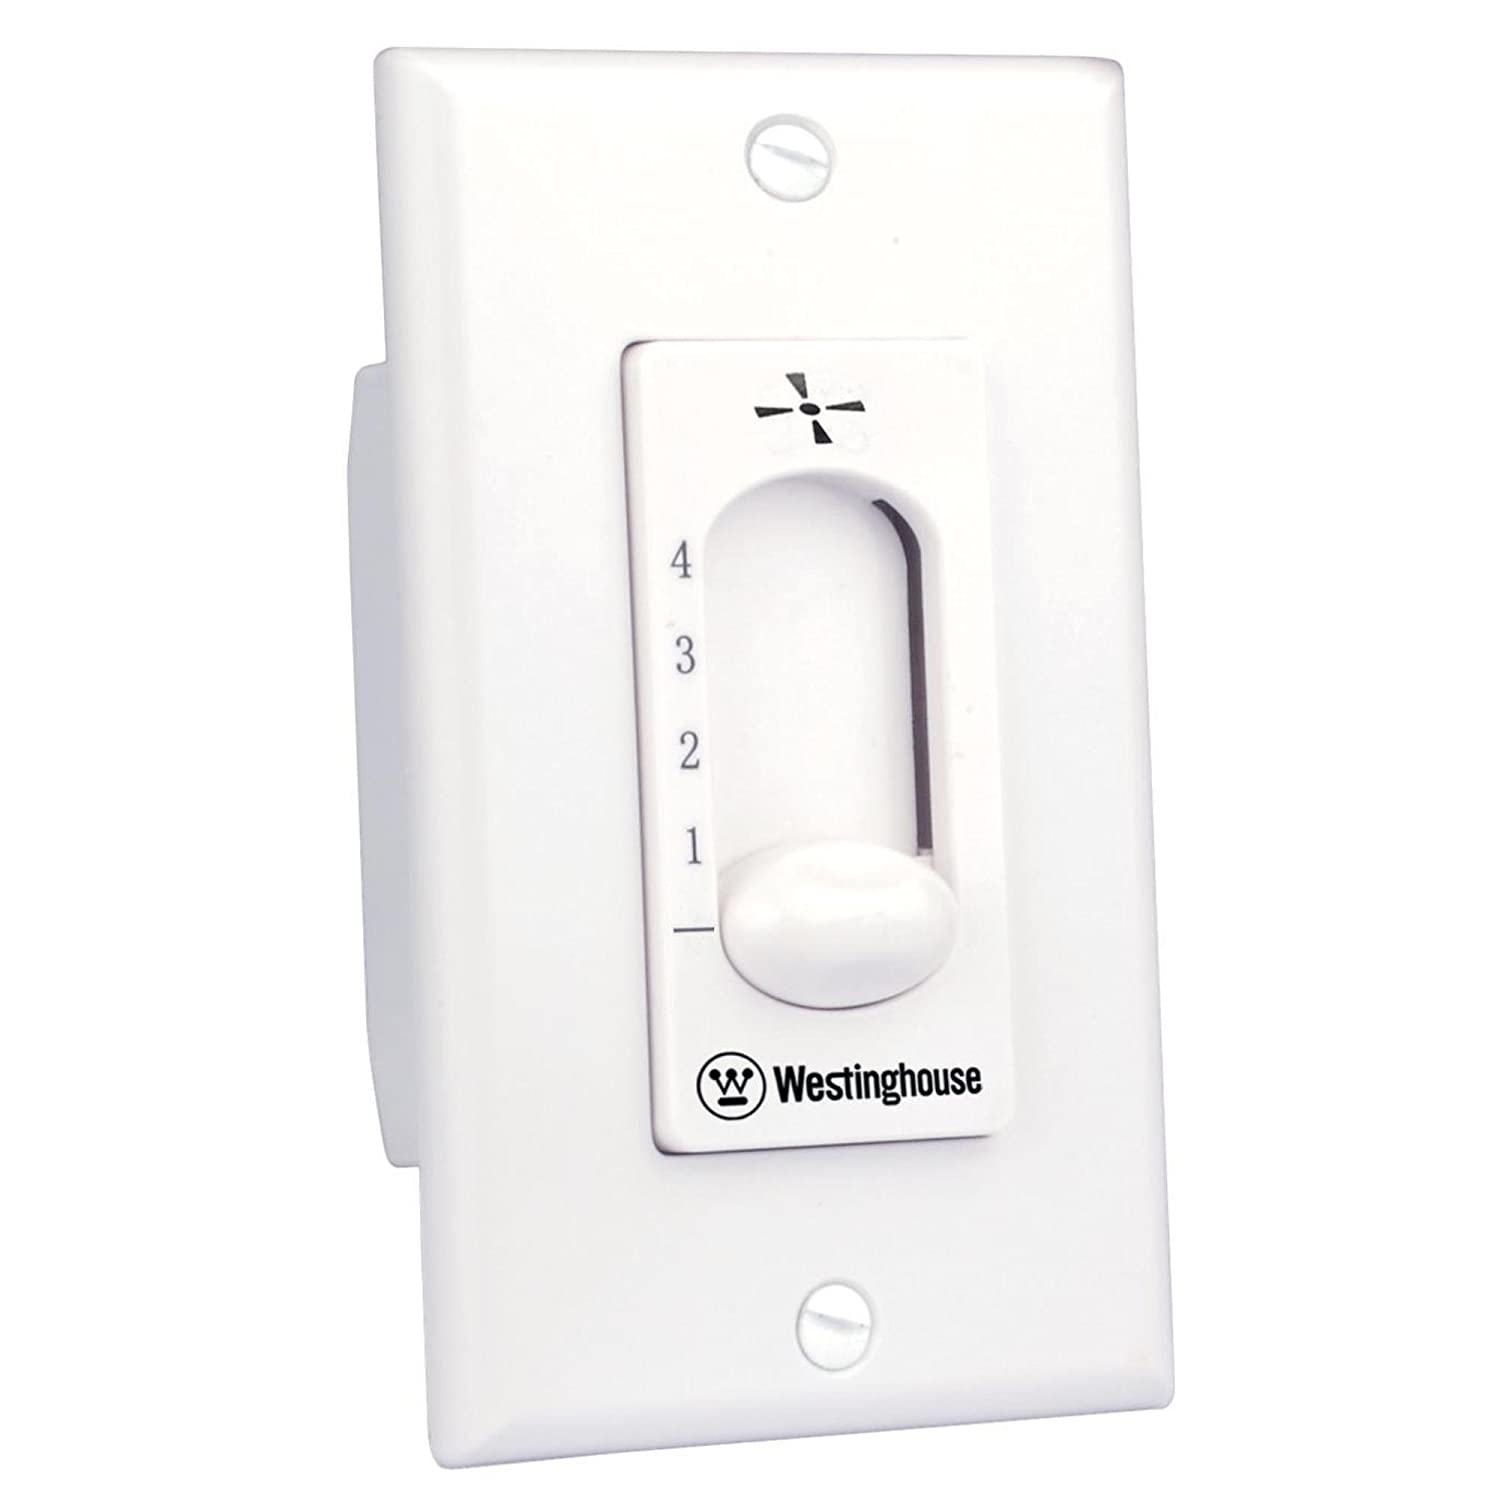 Westinghouse 7787200 Ceiling Fan Wall Control